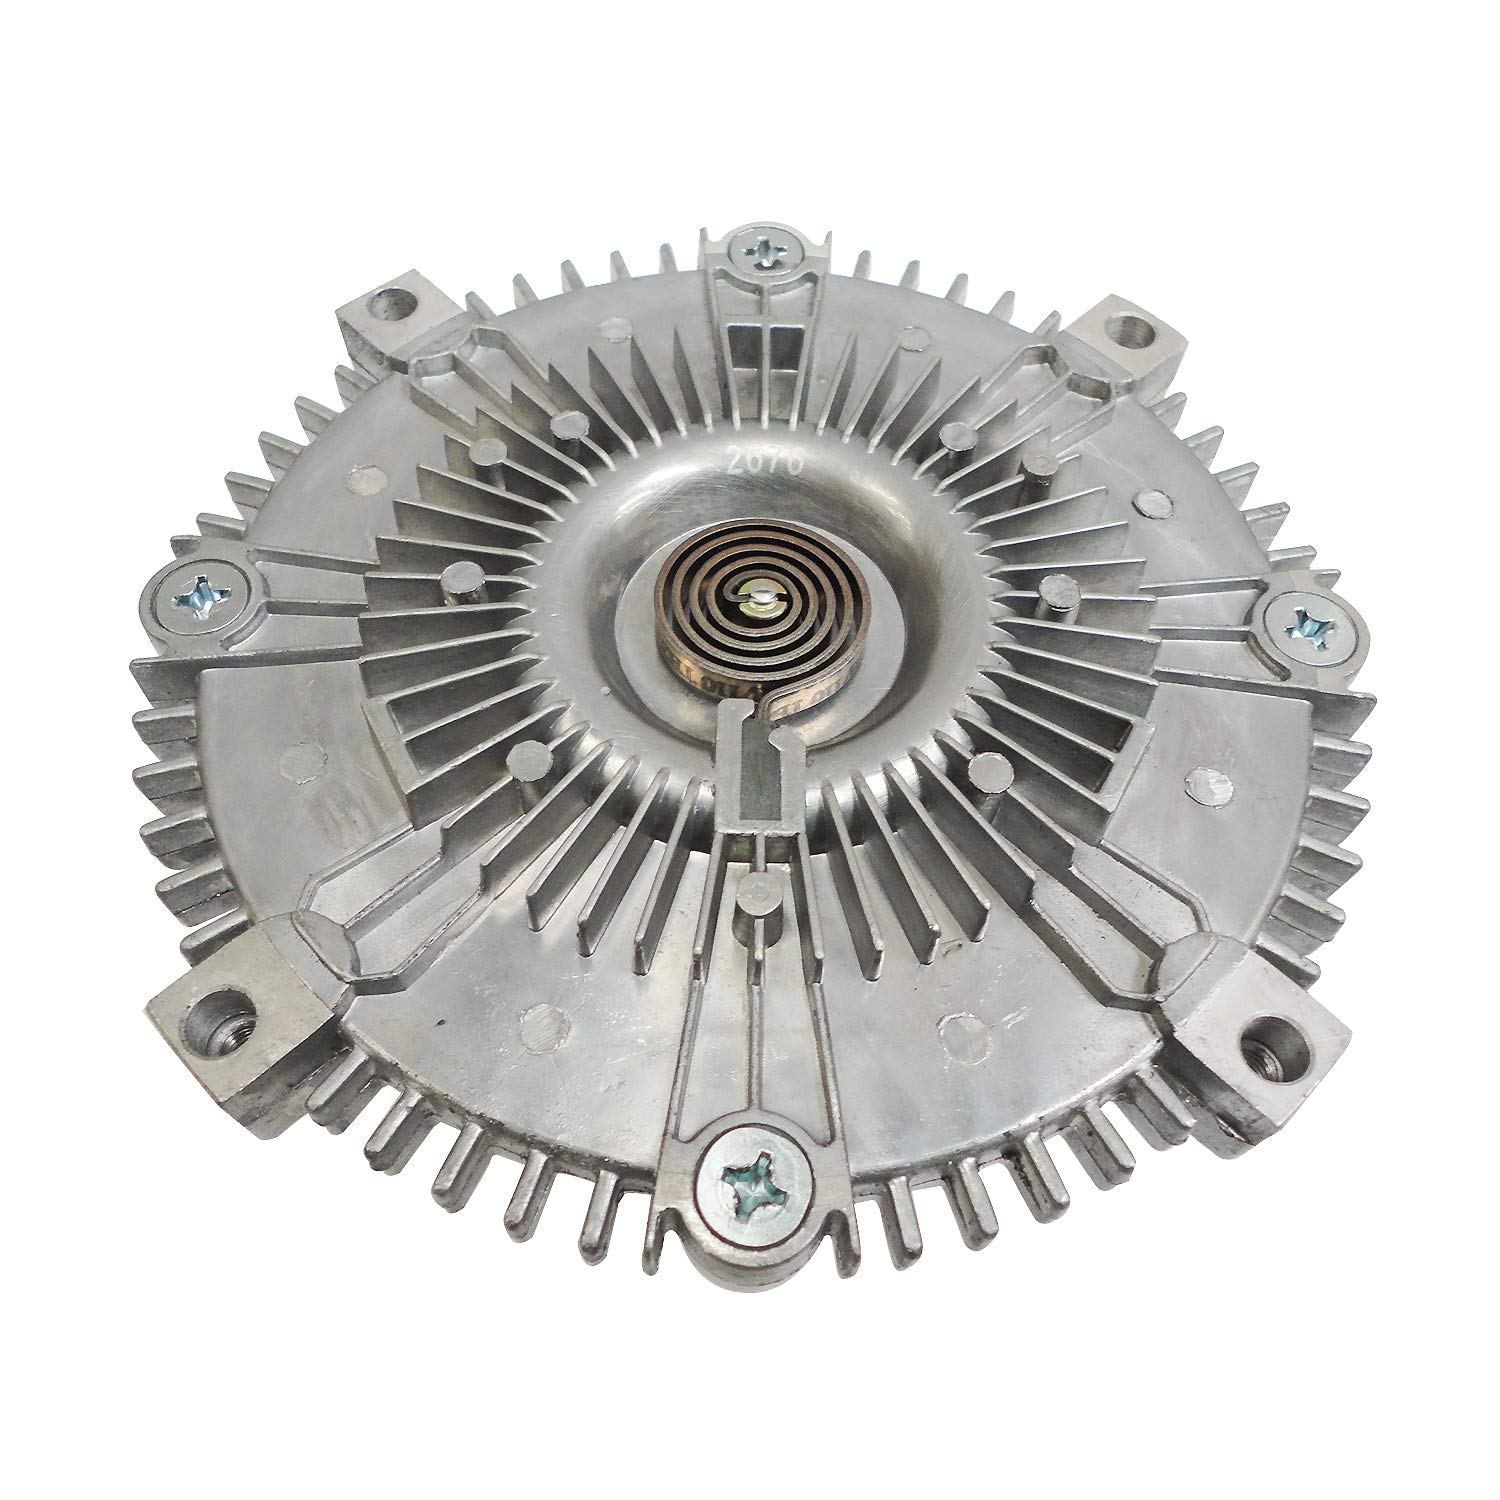 2676 Engine Cooling Fan Clutch Assembly for INFINITI FX45 2008-2003 Q45 2001-1997 QX4 2003-2001 NISSAN PATHFINDER 2004-2001